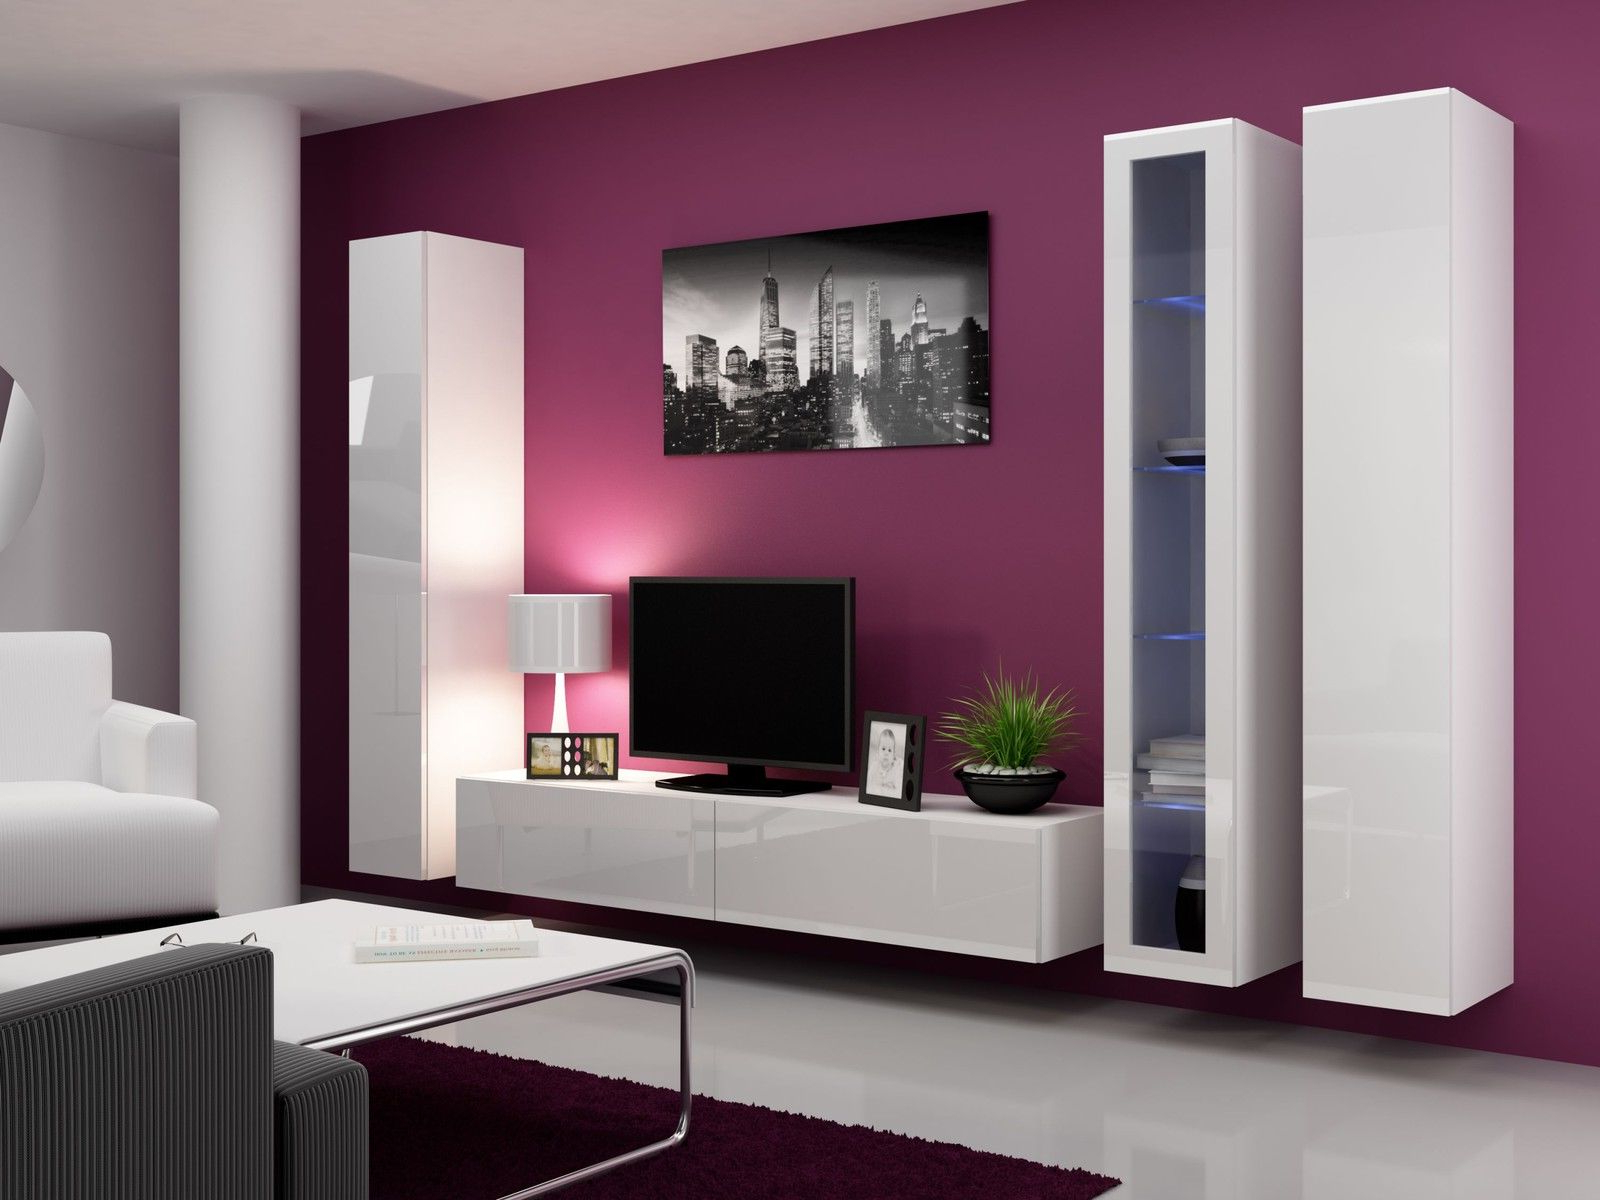 Tv Stands For Small Spaces Inside Preferred Floating Tv Stand For Small Space, Perfect! — Home Decor (View 15 of 20)